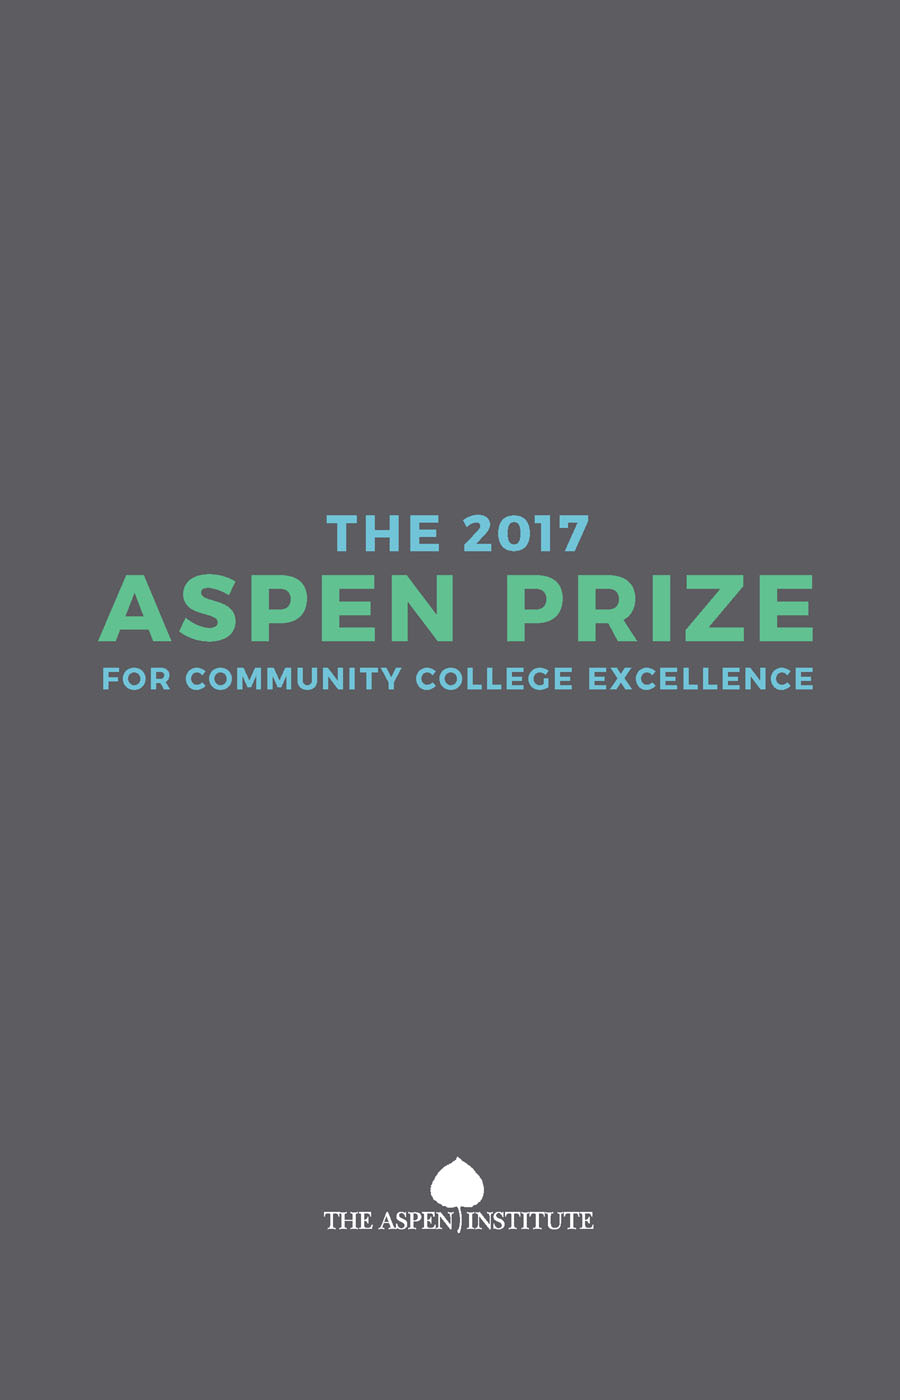 2017 Aspen Prize for Community College Excellence